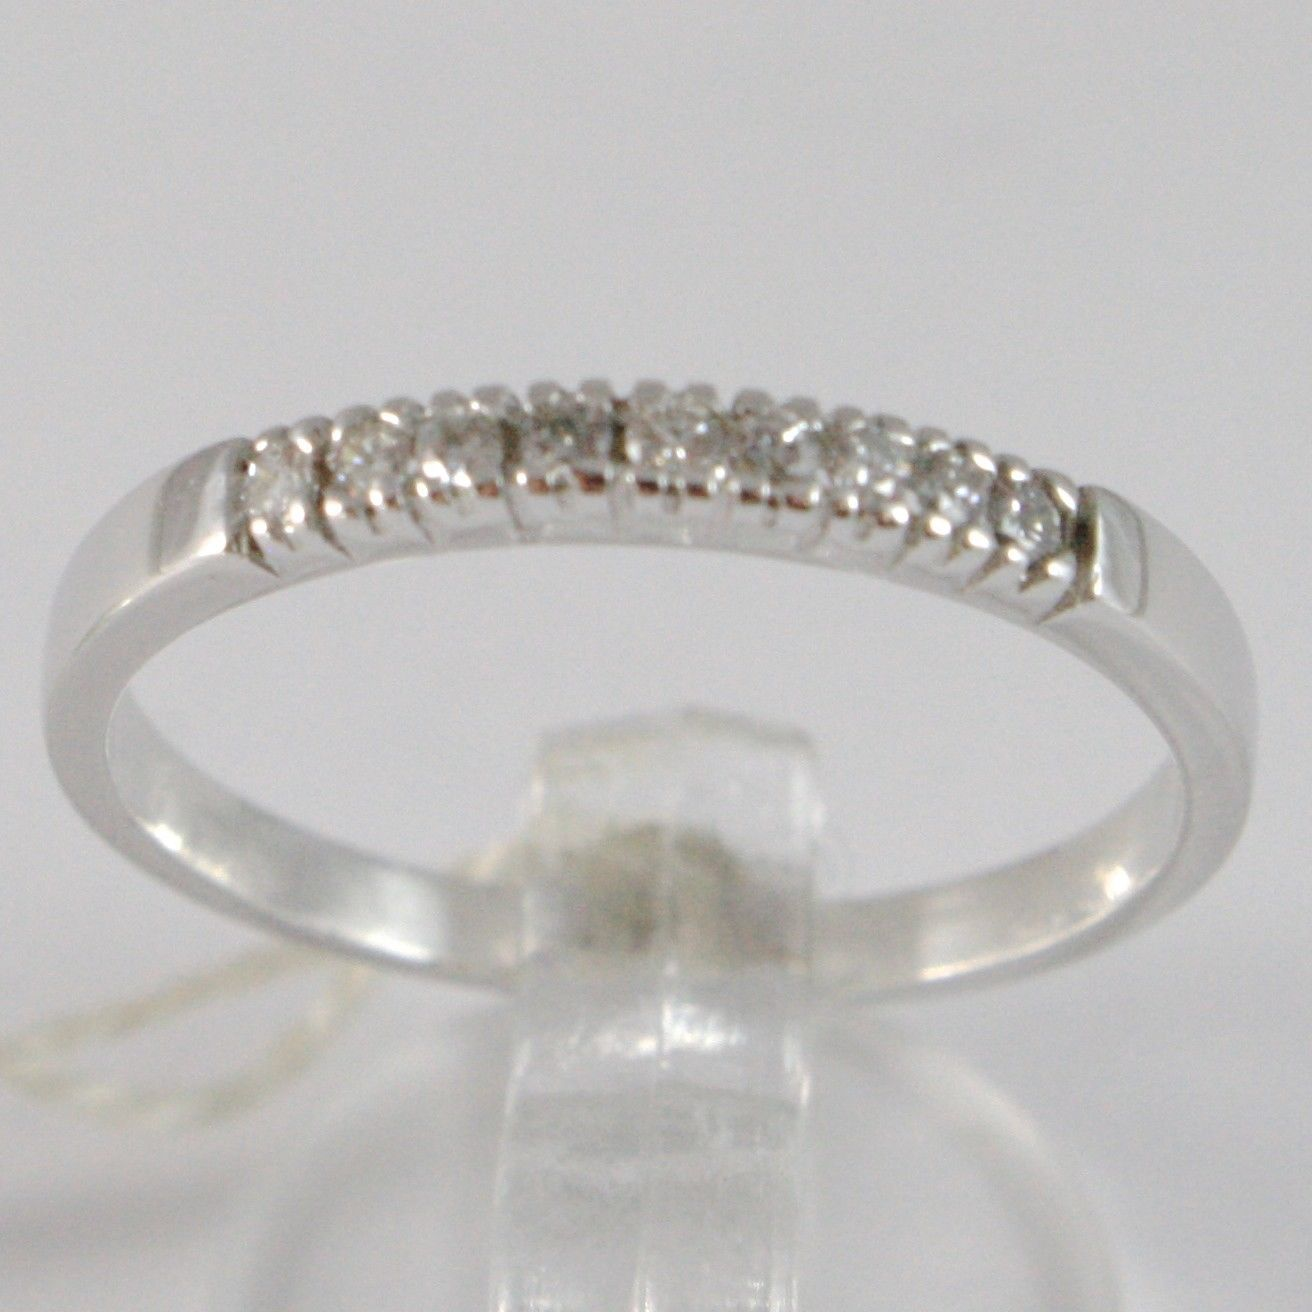 ANILLO DE ORO BLANCO 750 18 CT,VERETTA 9 DIAMANTES QUILATES TOTAL 0.06,VÁSTAGO